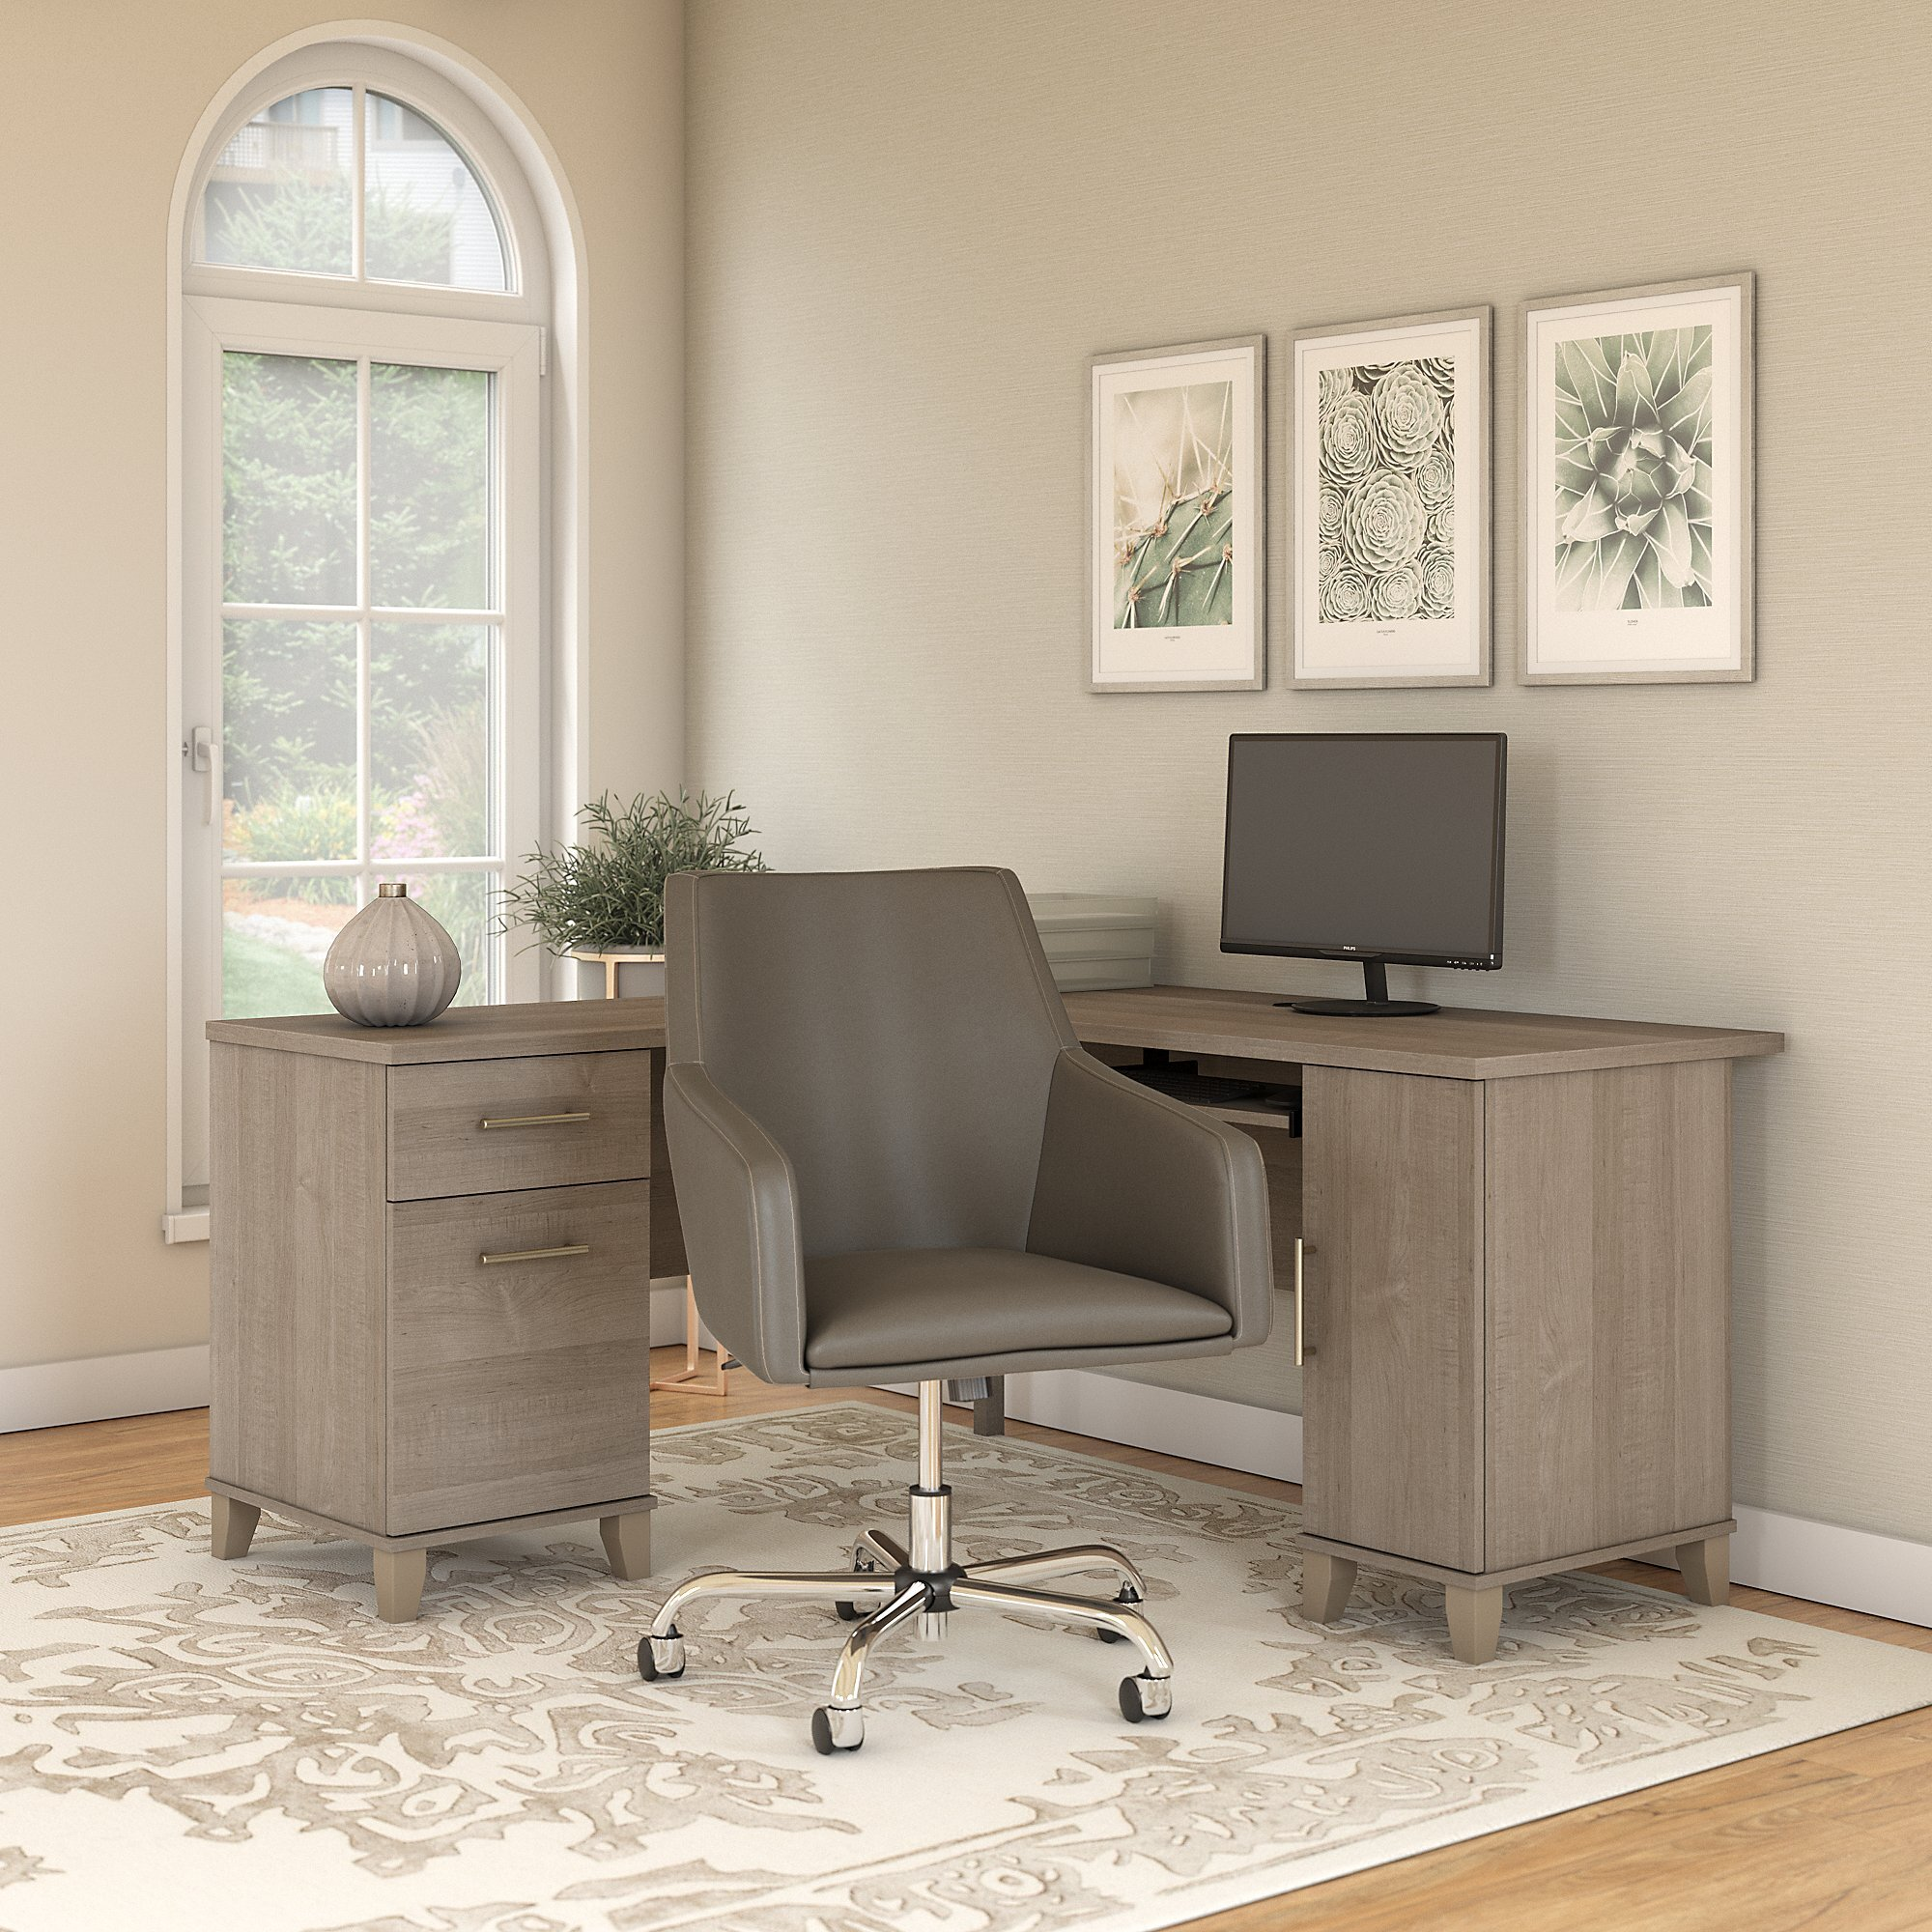 Keyboard Tray Modern Contemporary Office Furniture Sets You Ll Love In 2021 Wayfair